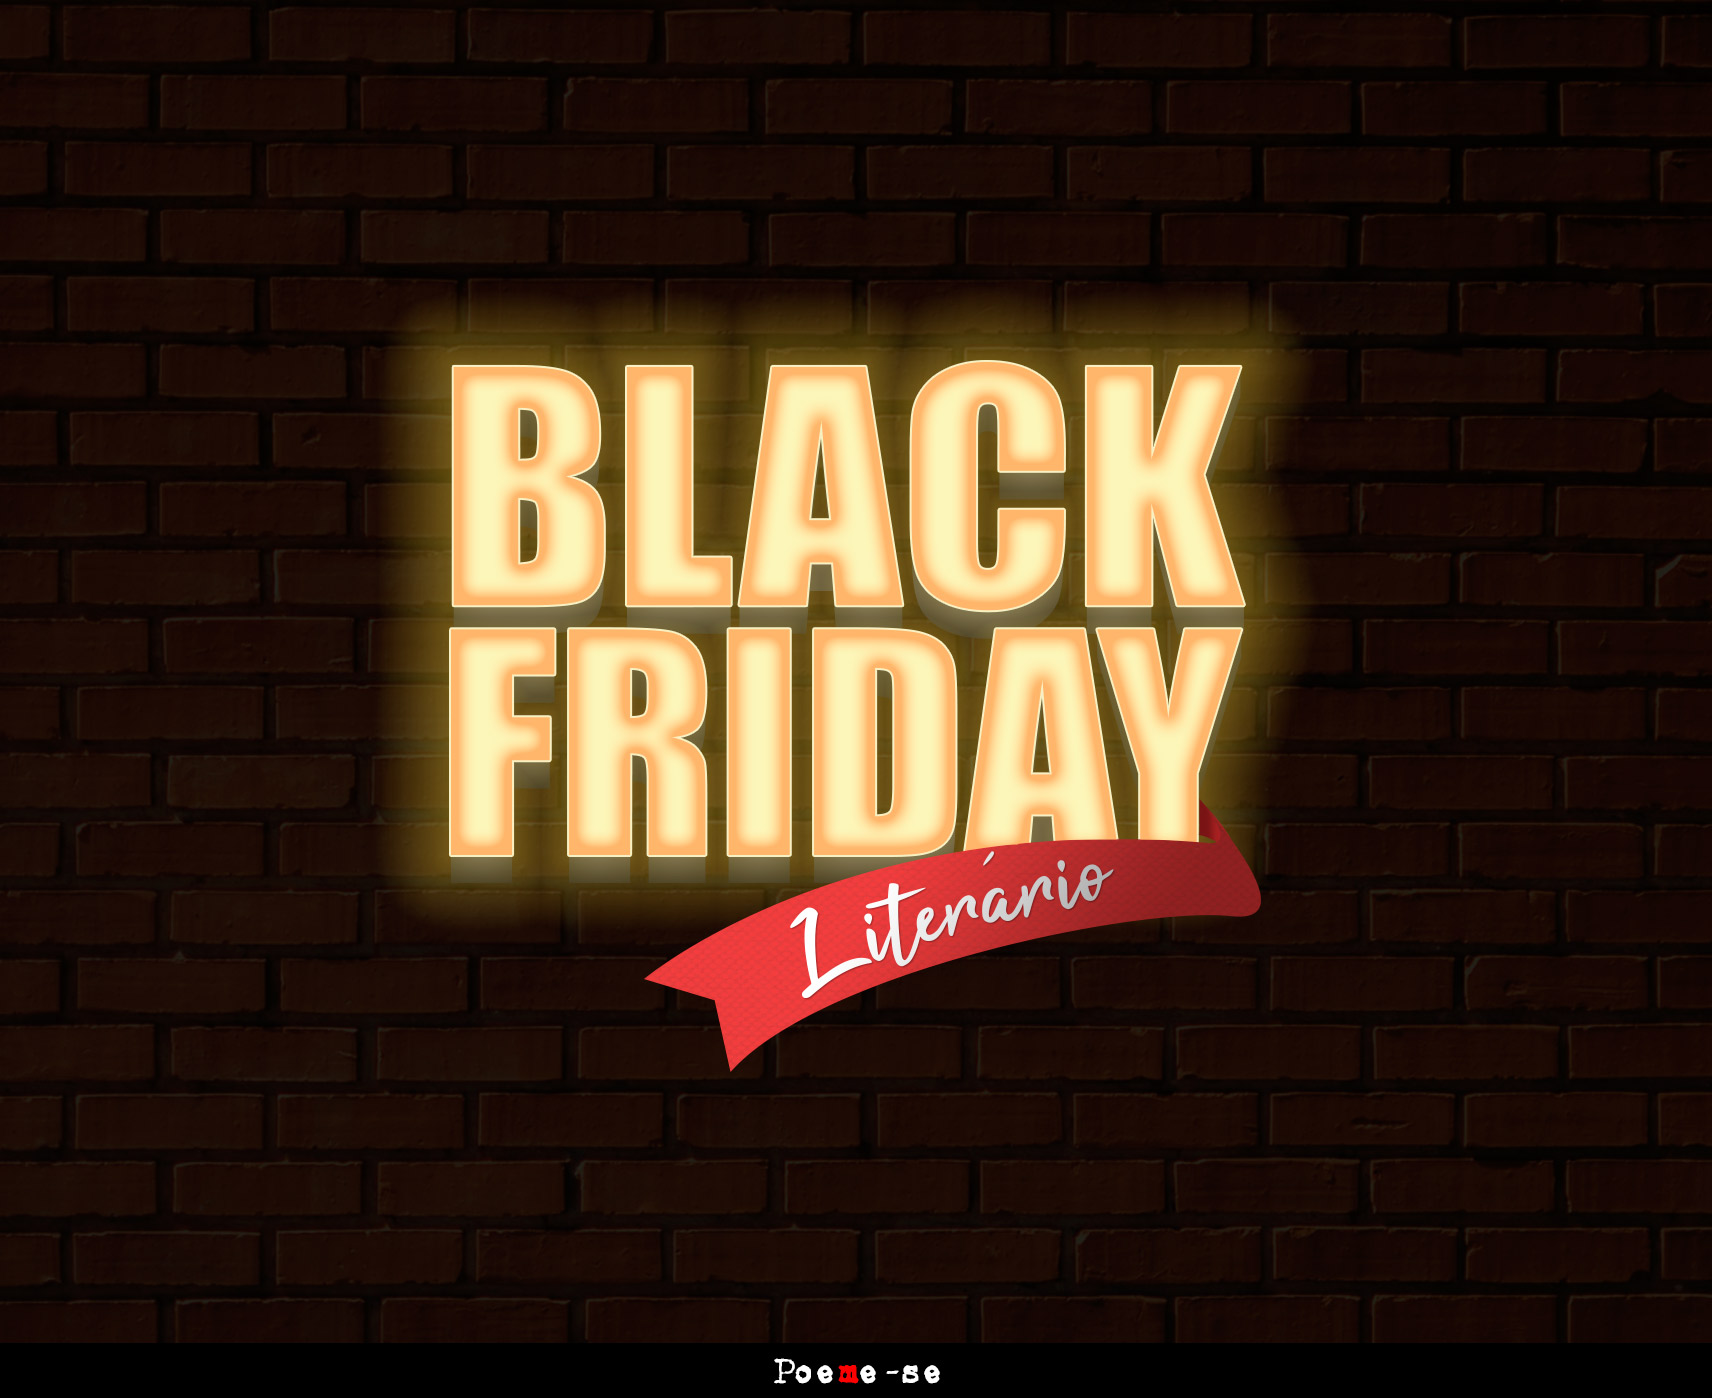 black friday literario e na poeme-se